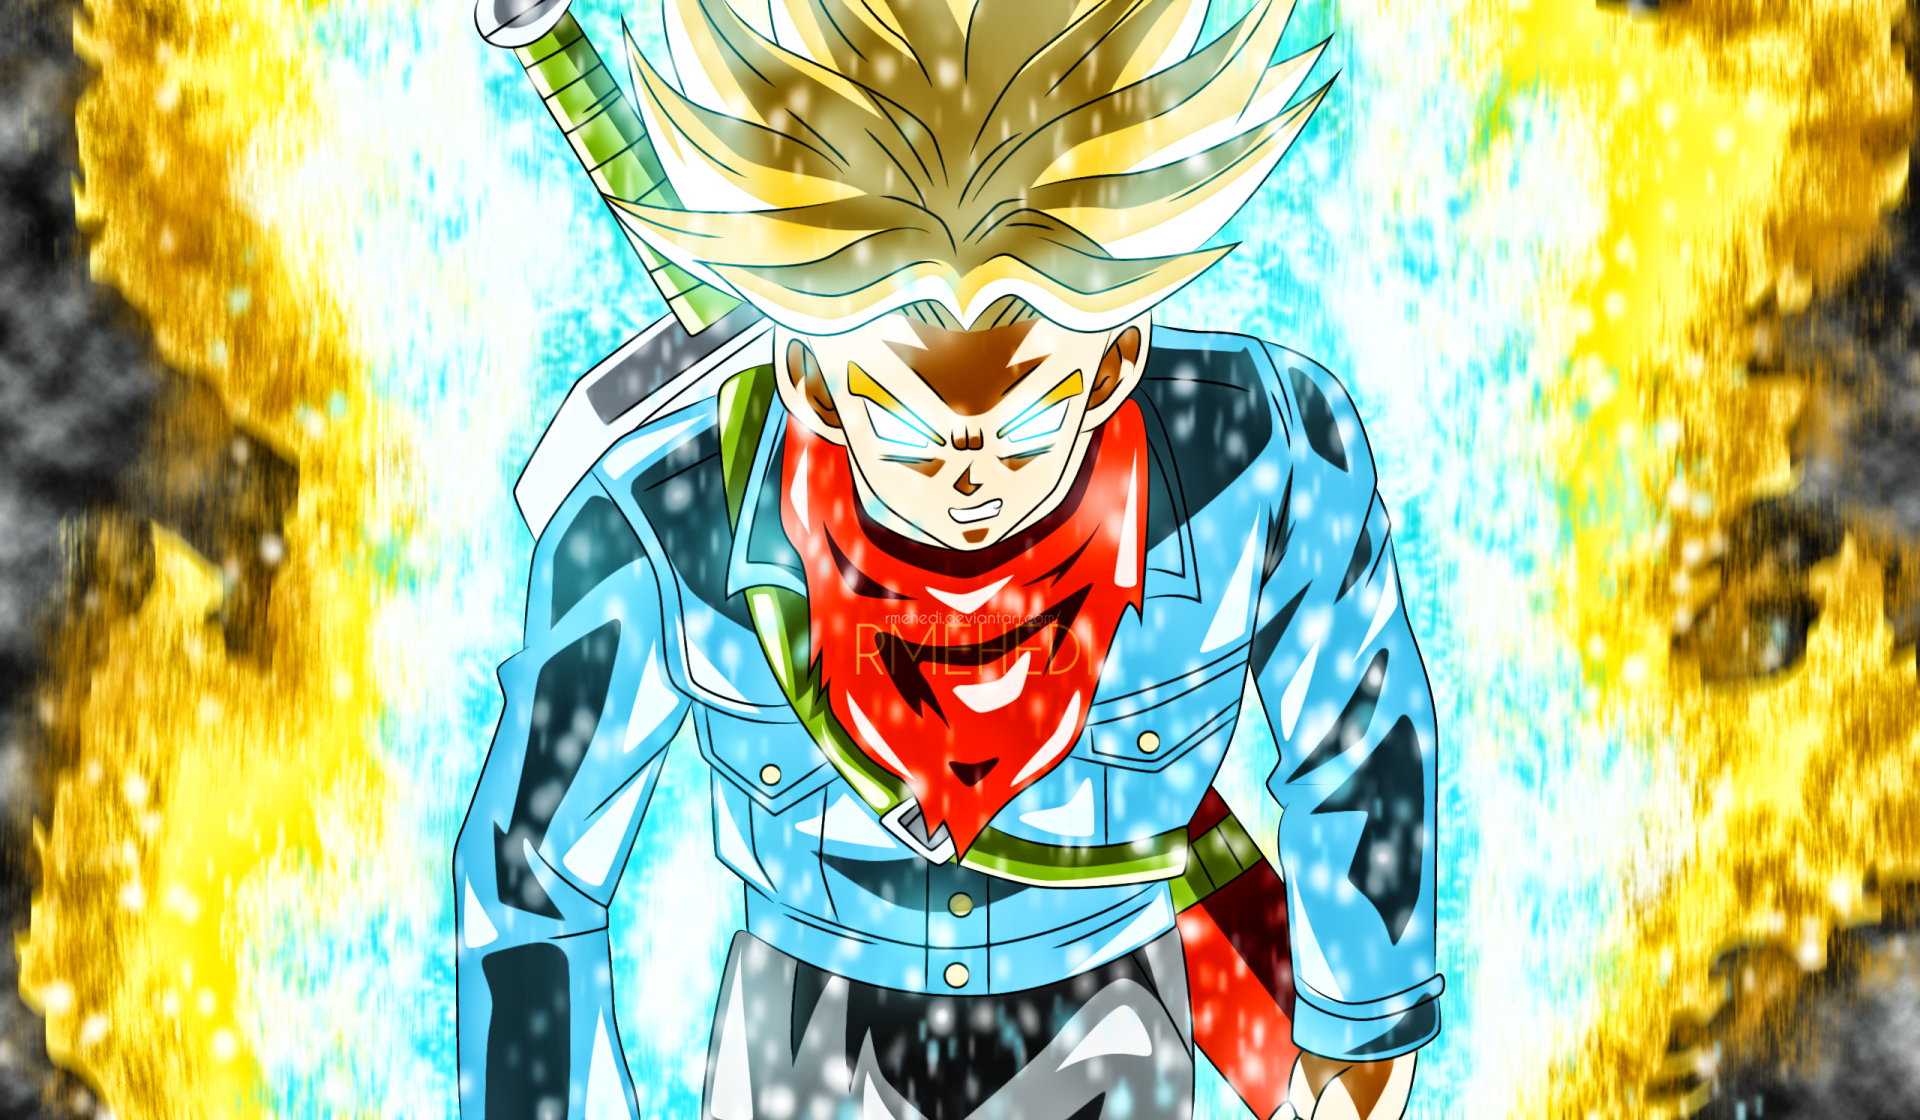 Anime - Dragon Ball Super  Trunks (Dragon Ball) Dragon Ball Super Saiyan Rage Wallpaper